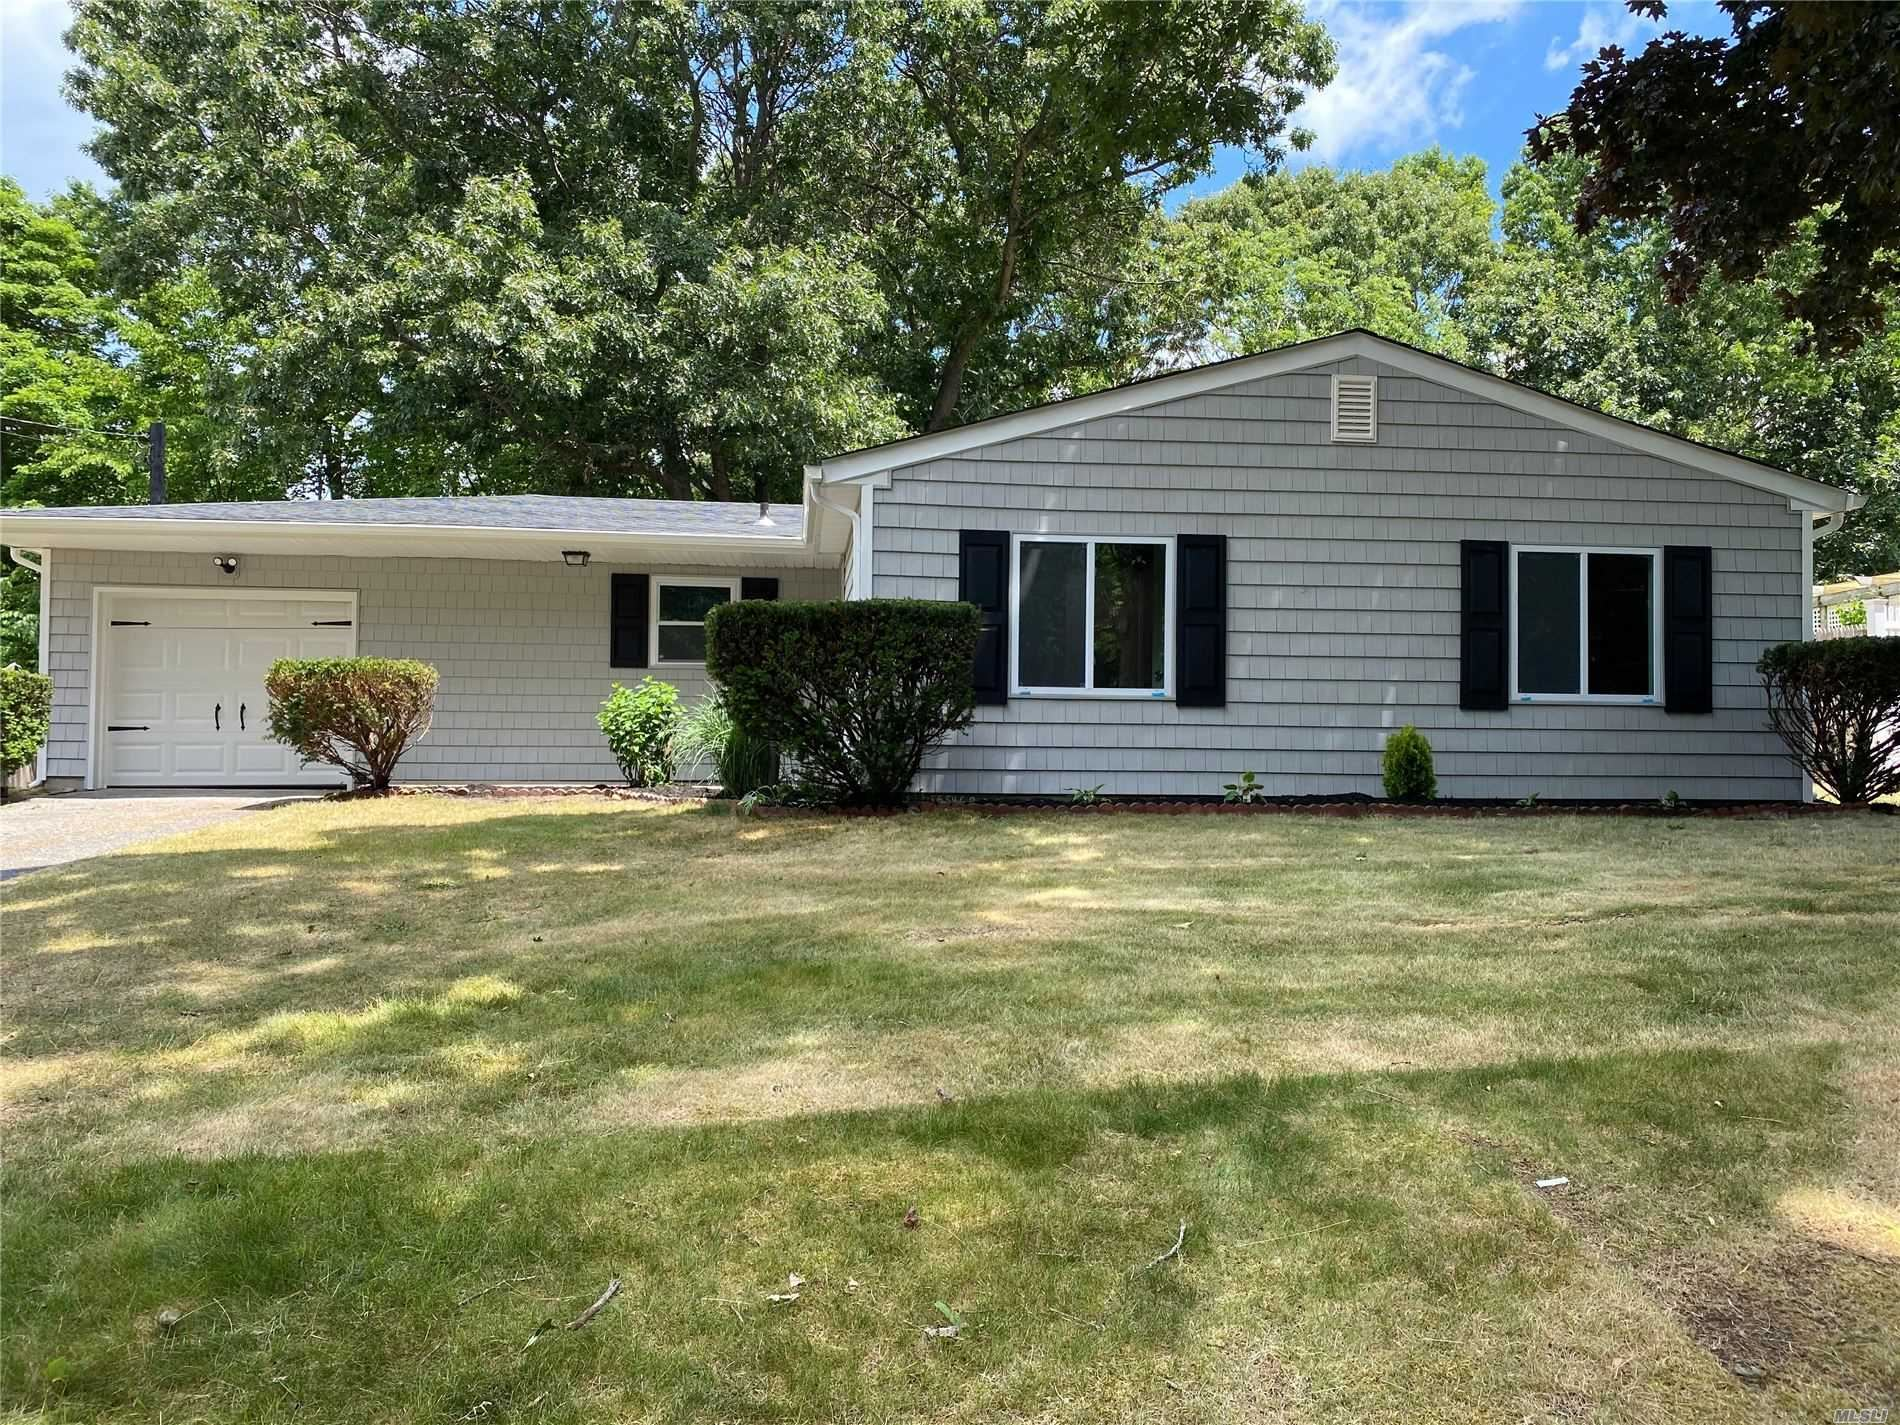 63 S Bicycle Path, Selden, NY 11784 - MLS#: 3226864